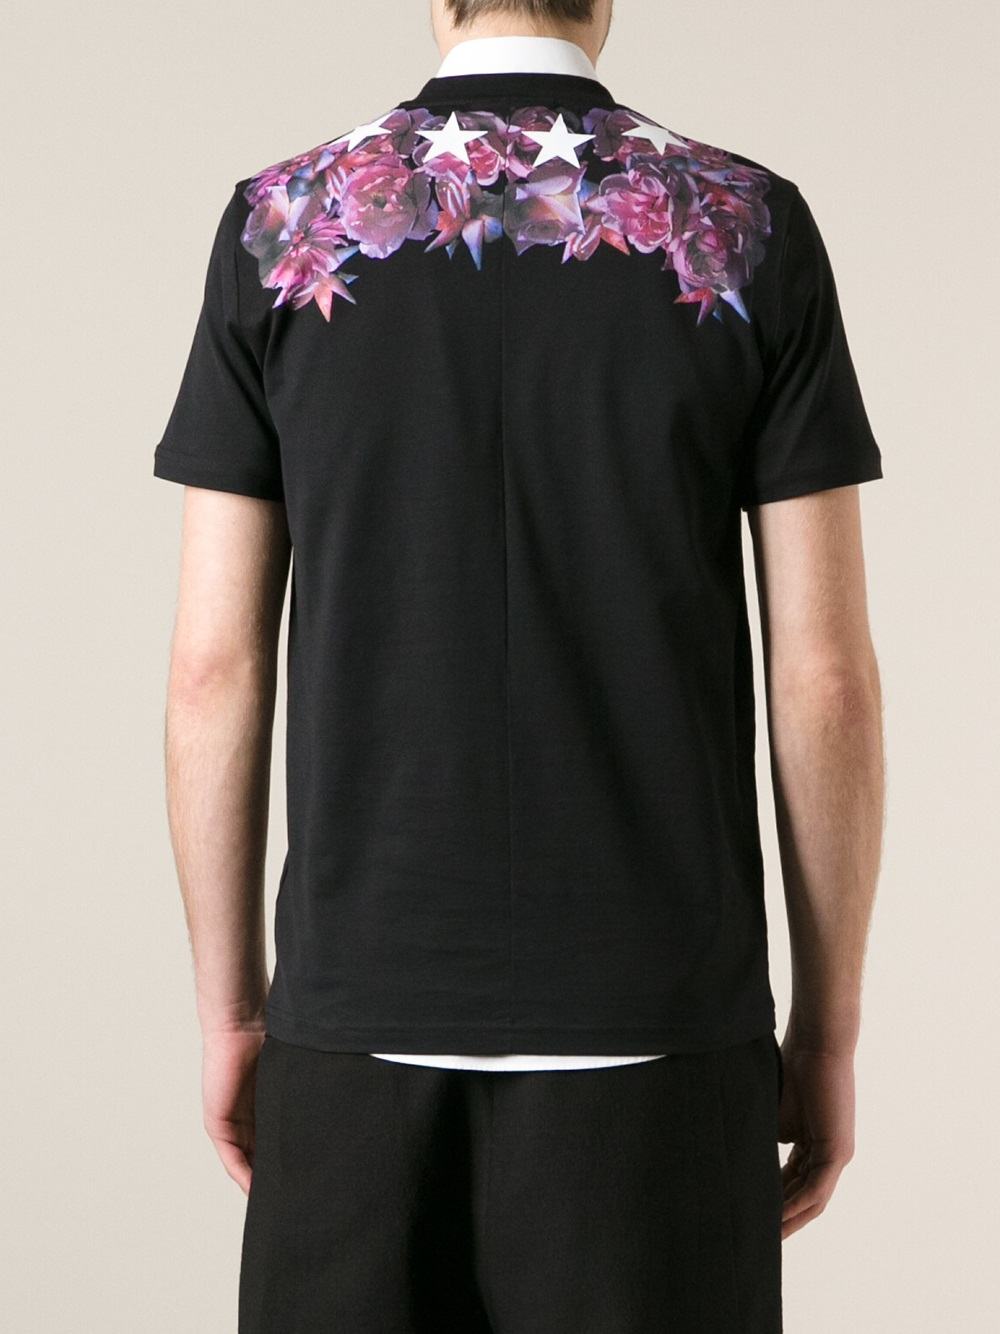 Givenchy Flower And Star Print Tshirt In Black For Men Lyst